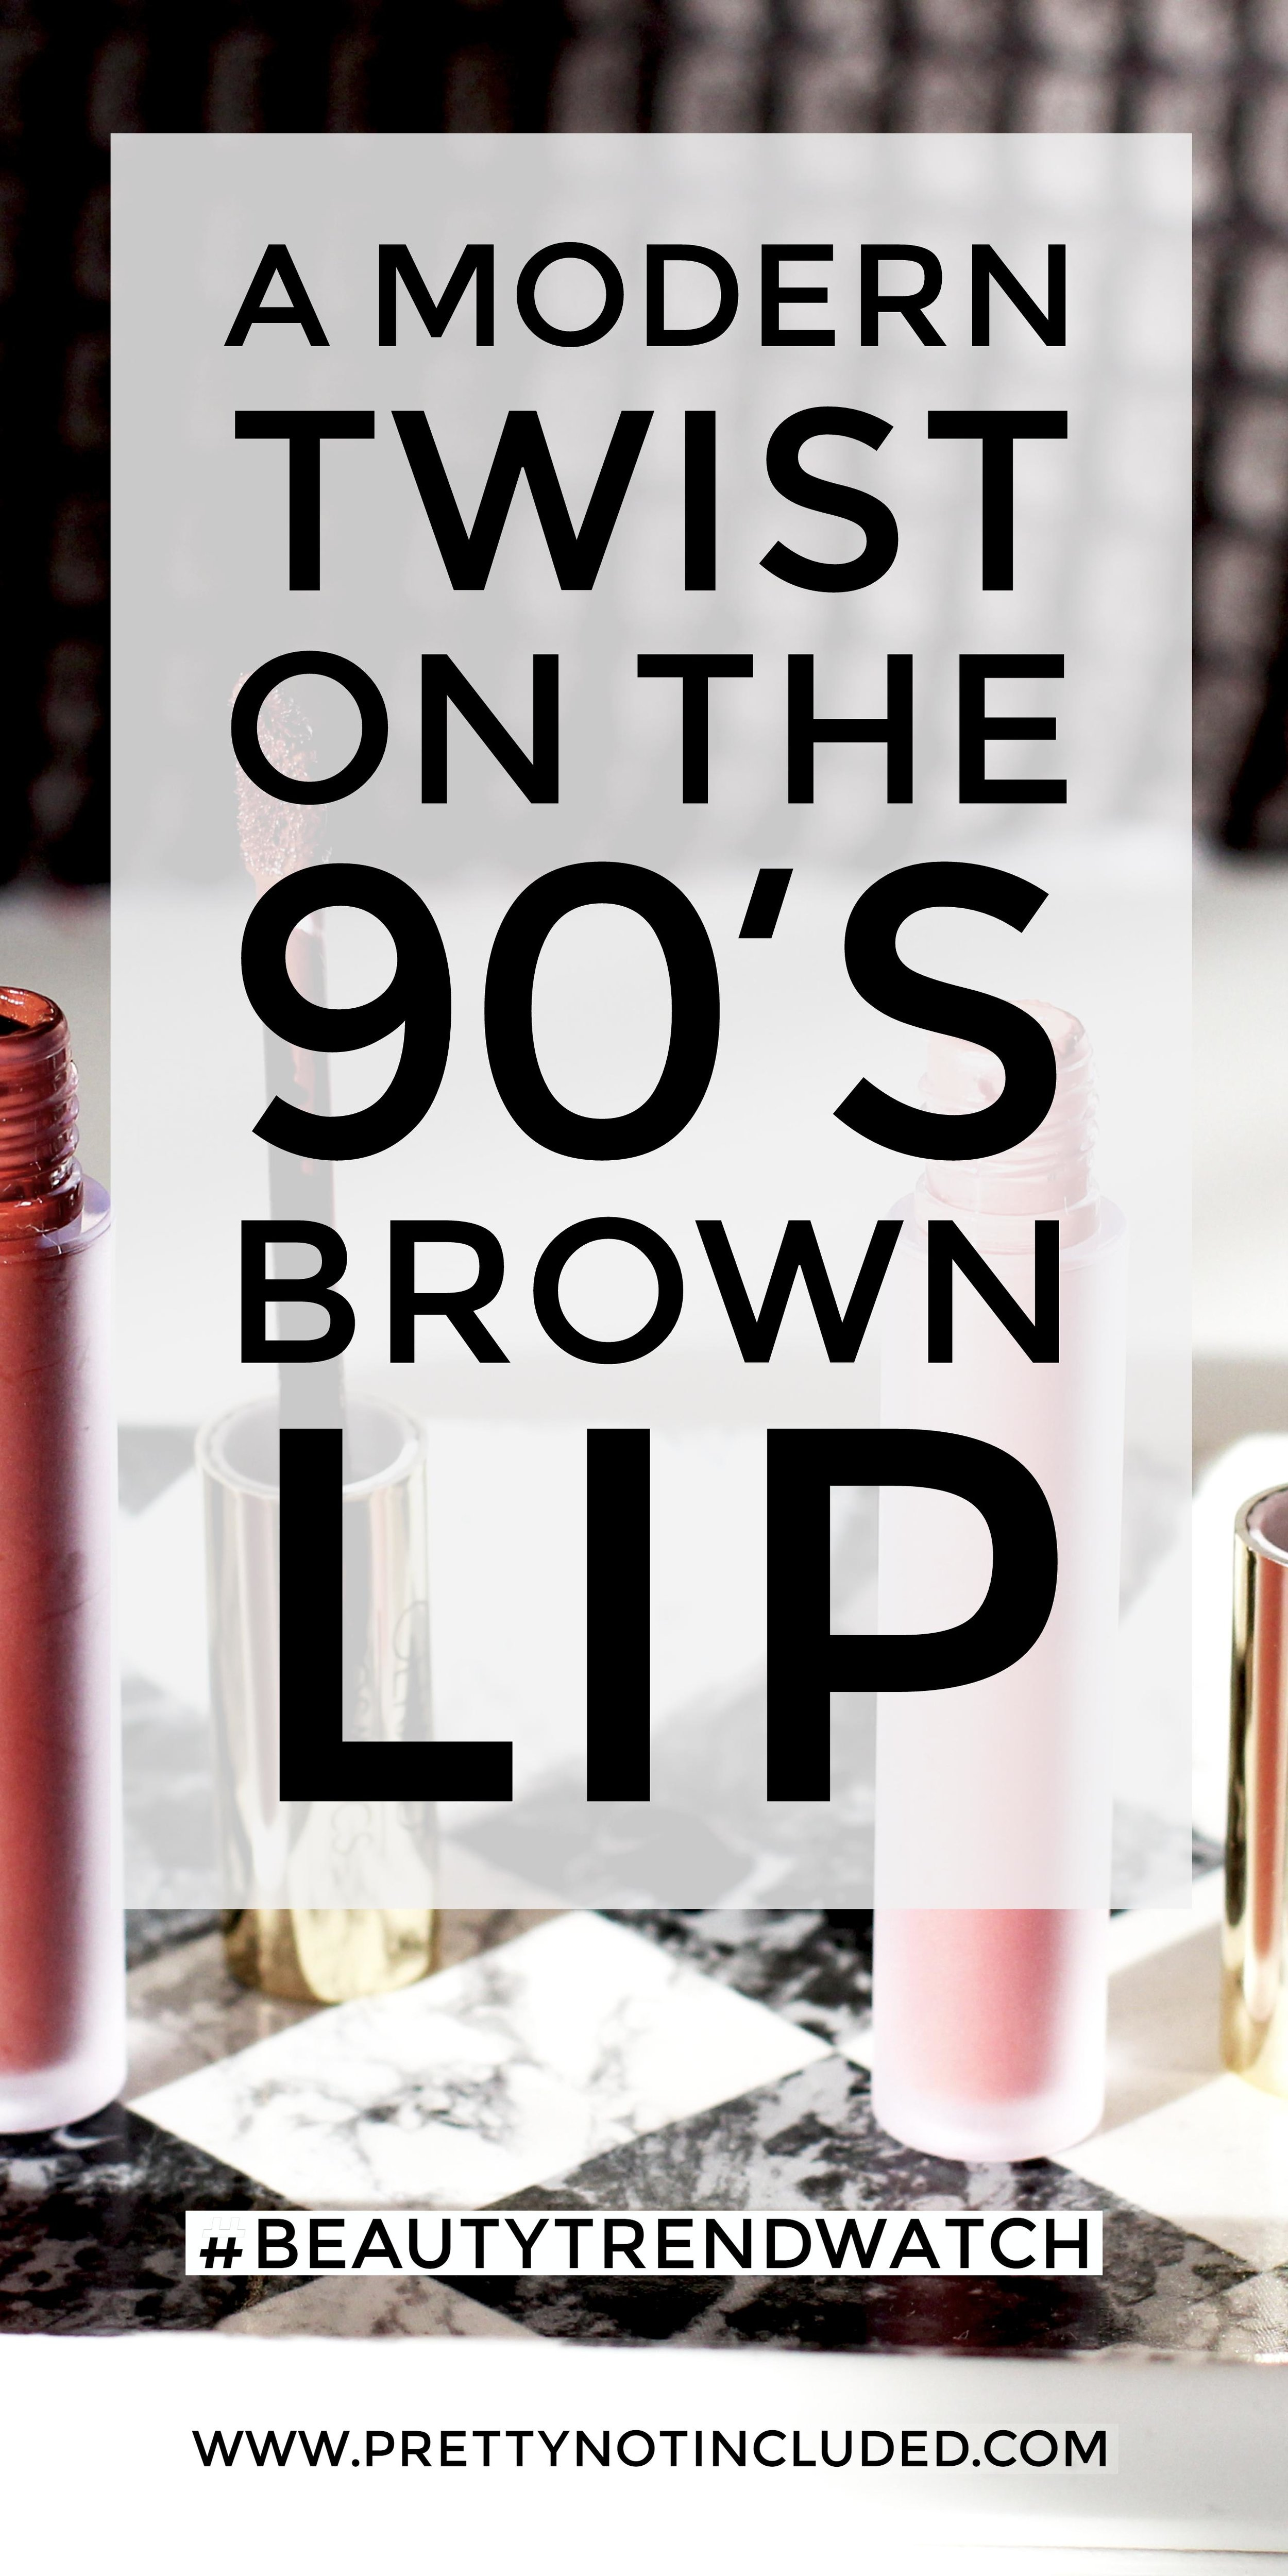 A modern twist on the 90's brown lip trend trend with these matte liquid lipsticks from Gerard Cosmetics. Swatches included.